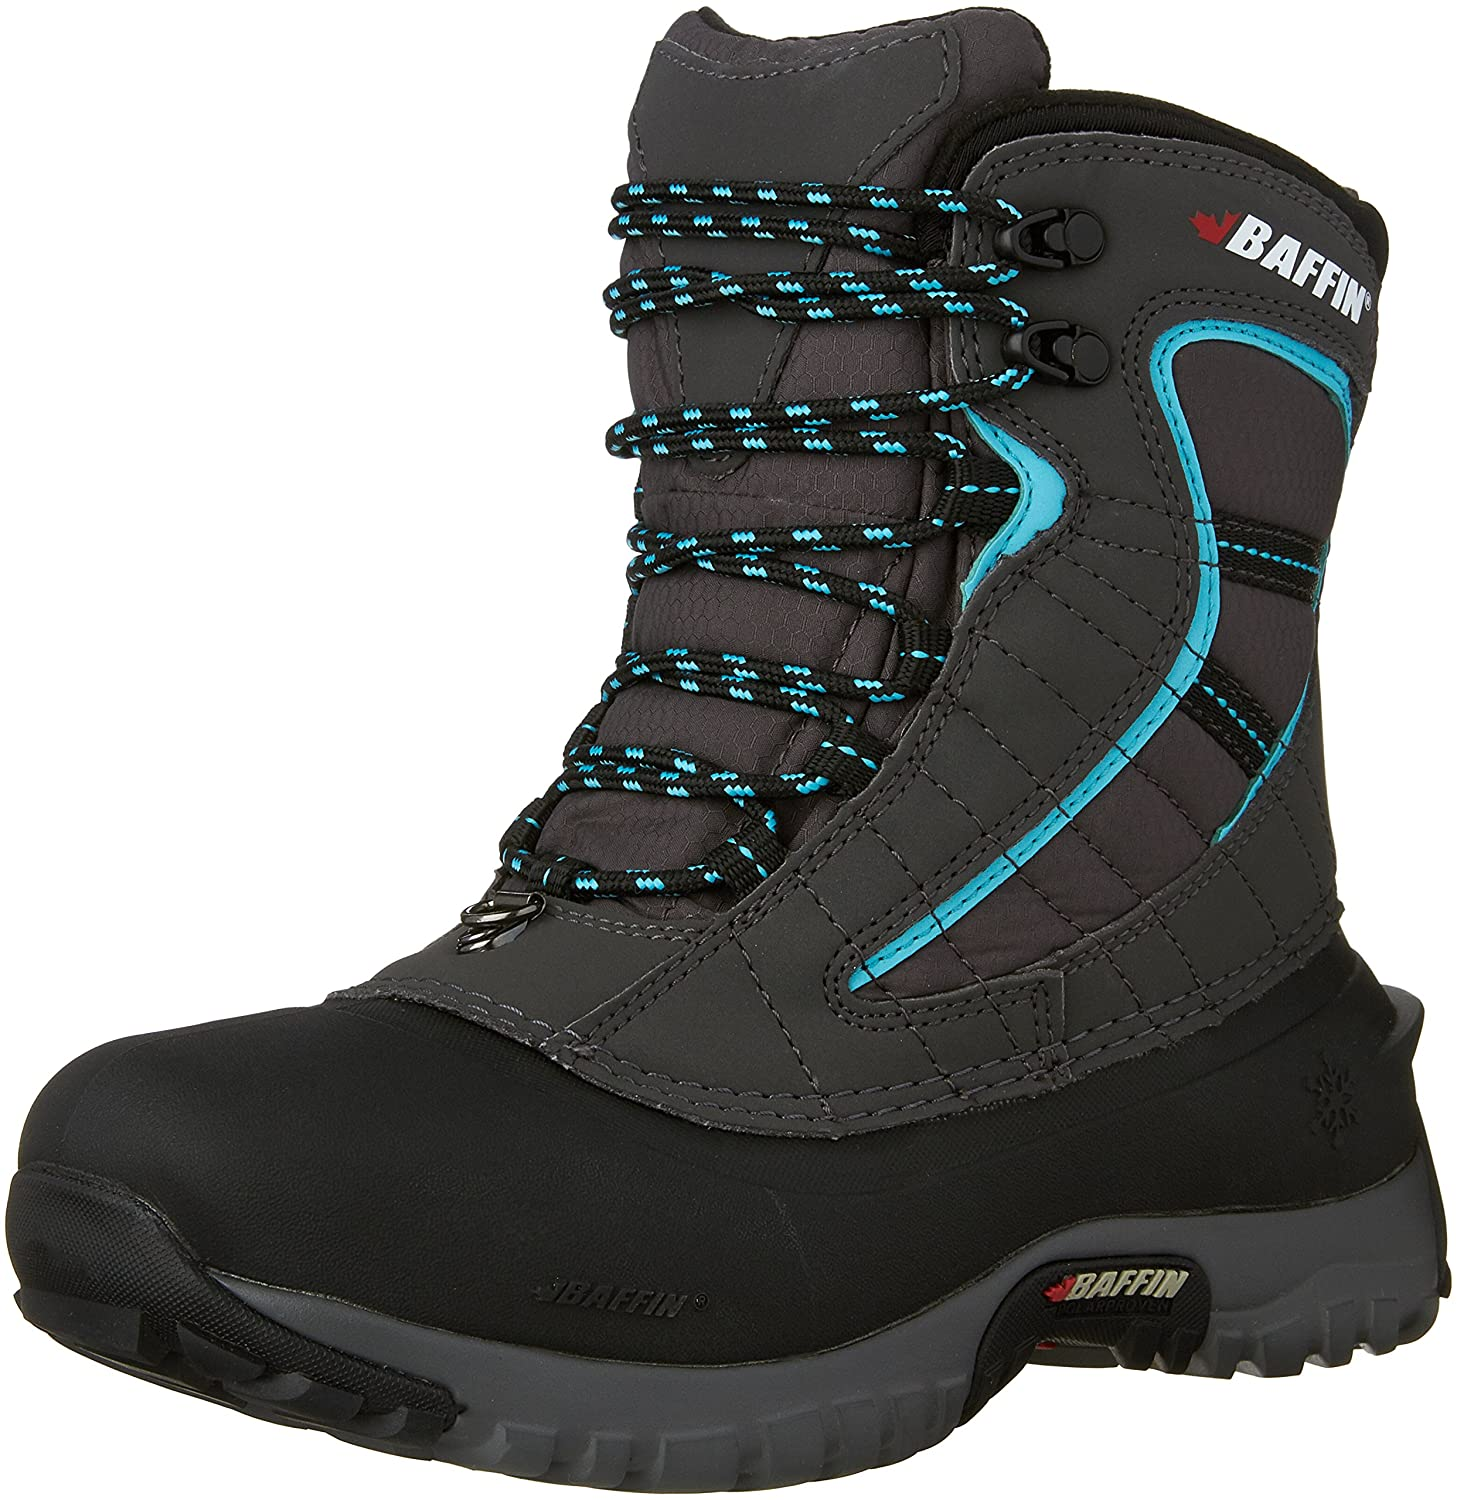 Baffin Women's Sage Insulated Active Boot B00HNTOTLM 7 B(M) US|Charcoal/Teal